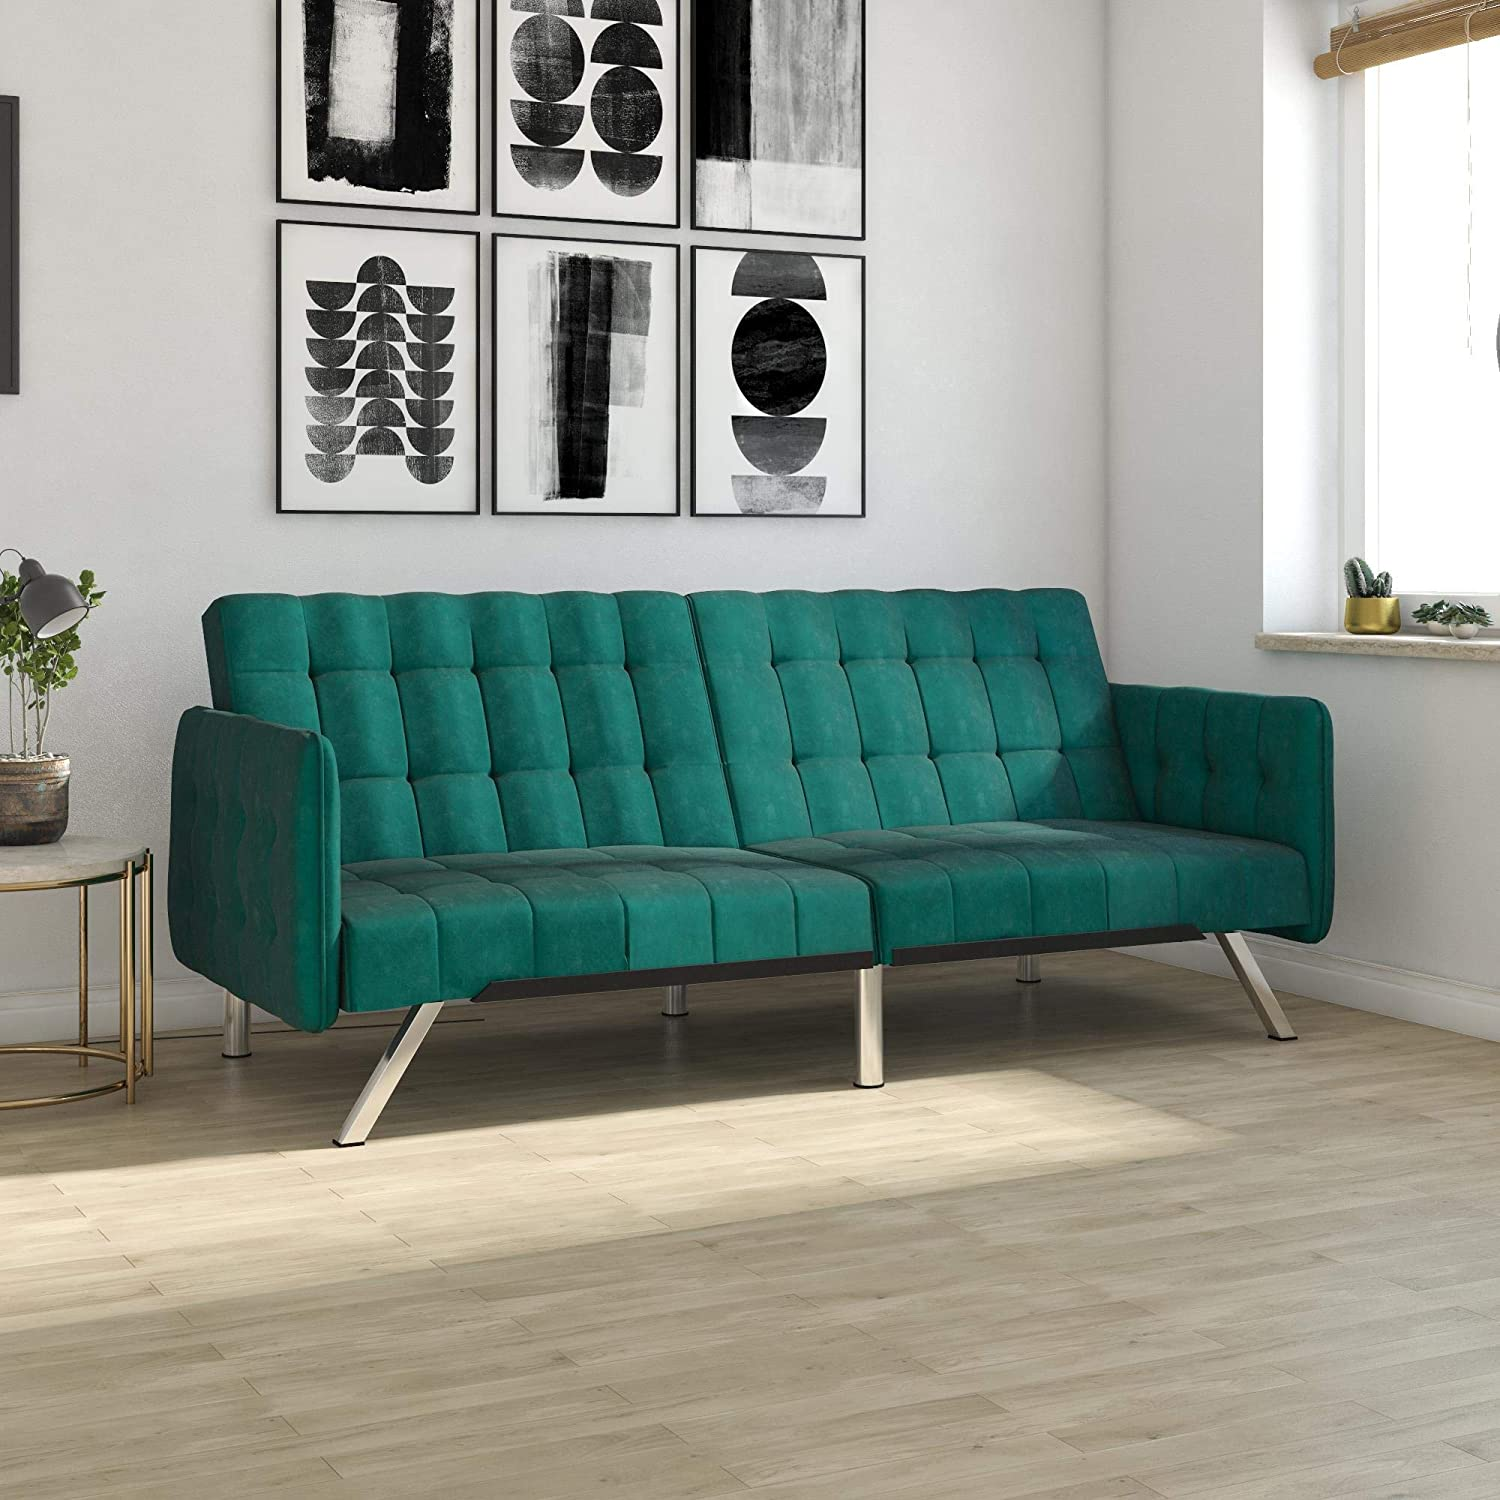 Amazon com dhp emily convertible futon and sofa sleeper modern style with tufted cushion arm rests and chrome legs quickly converts into a bed green